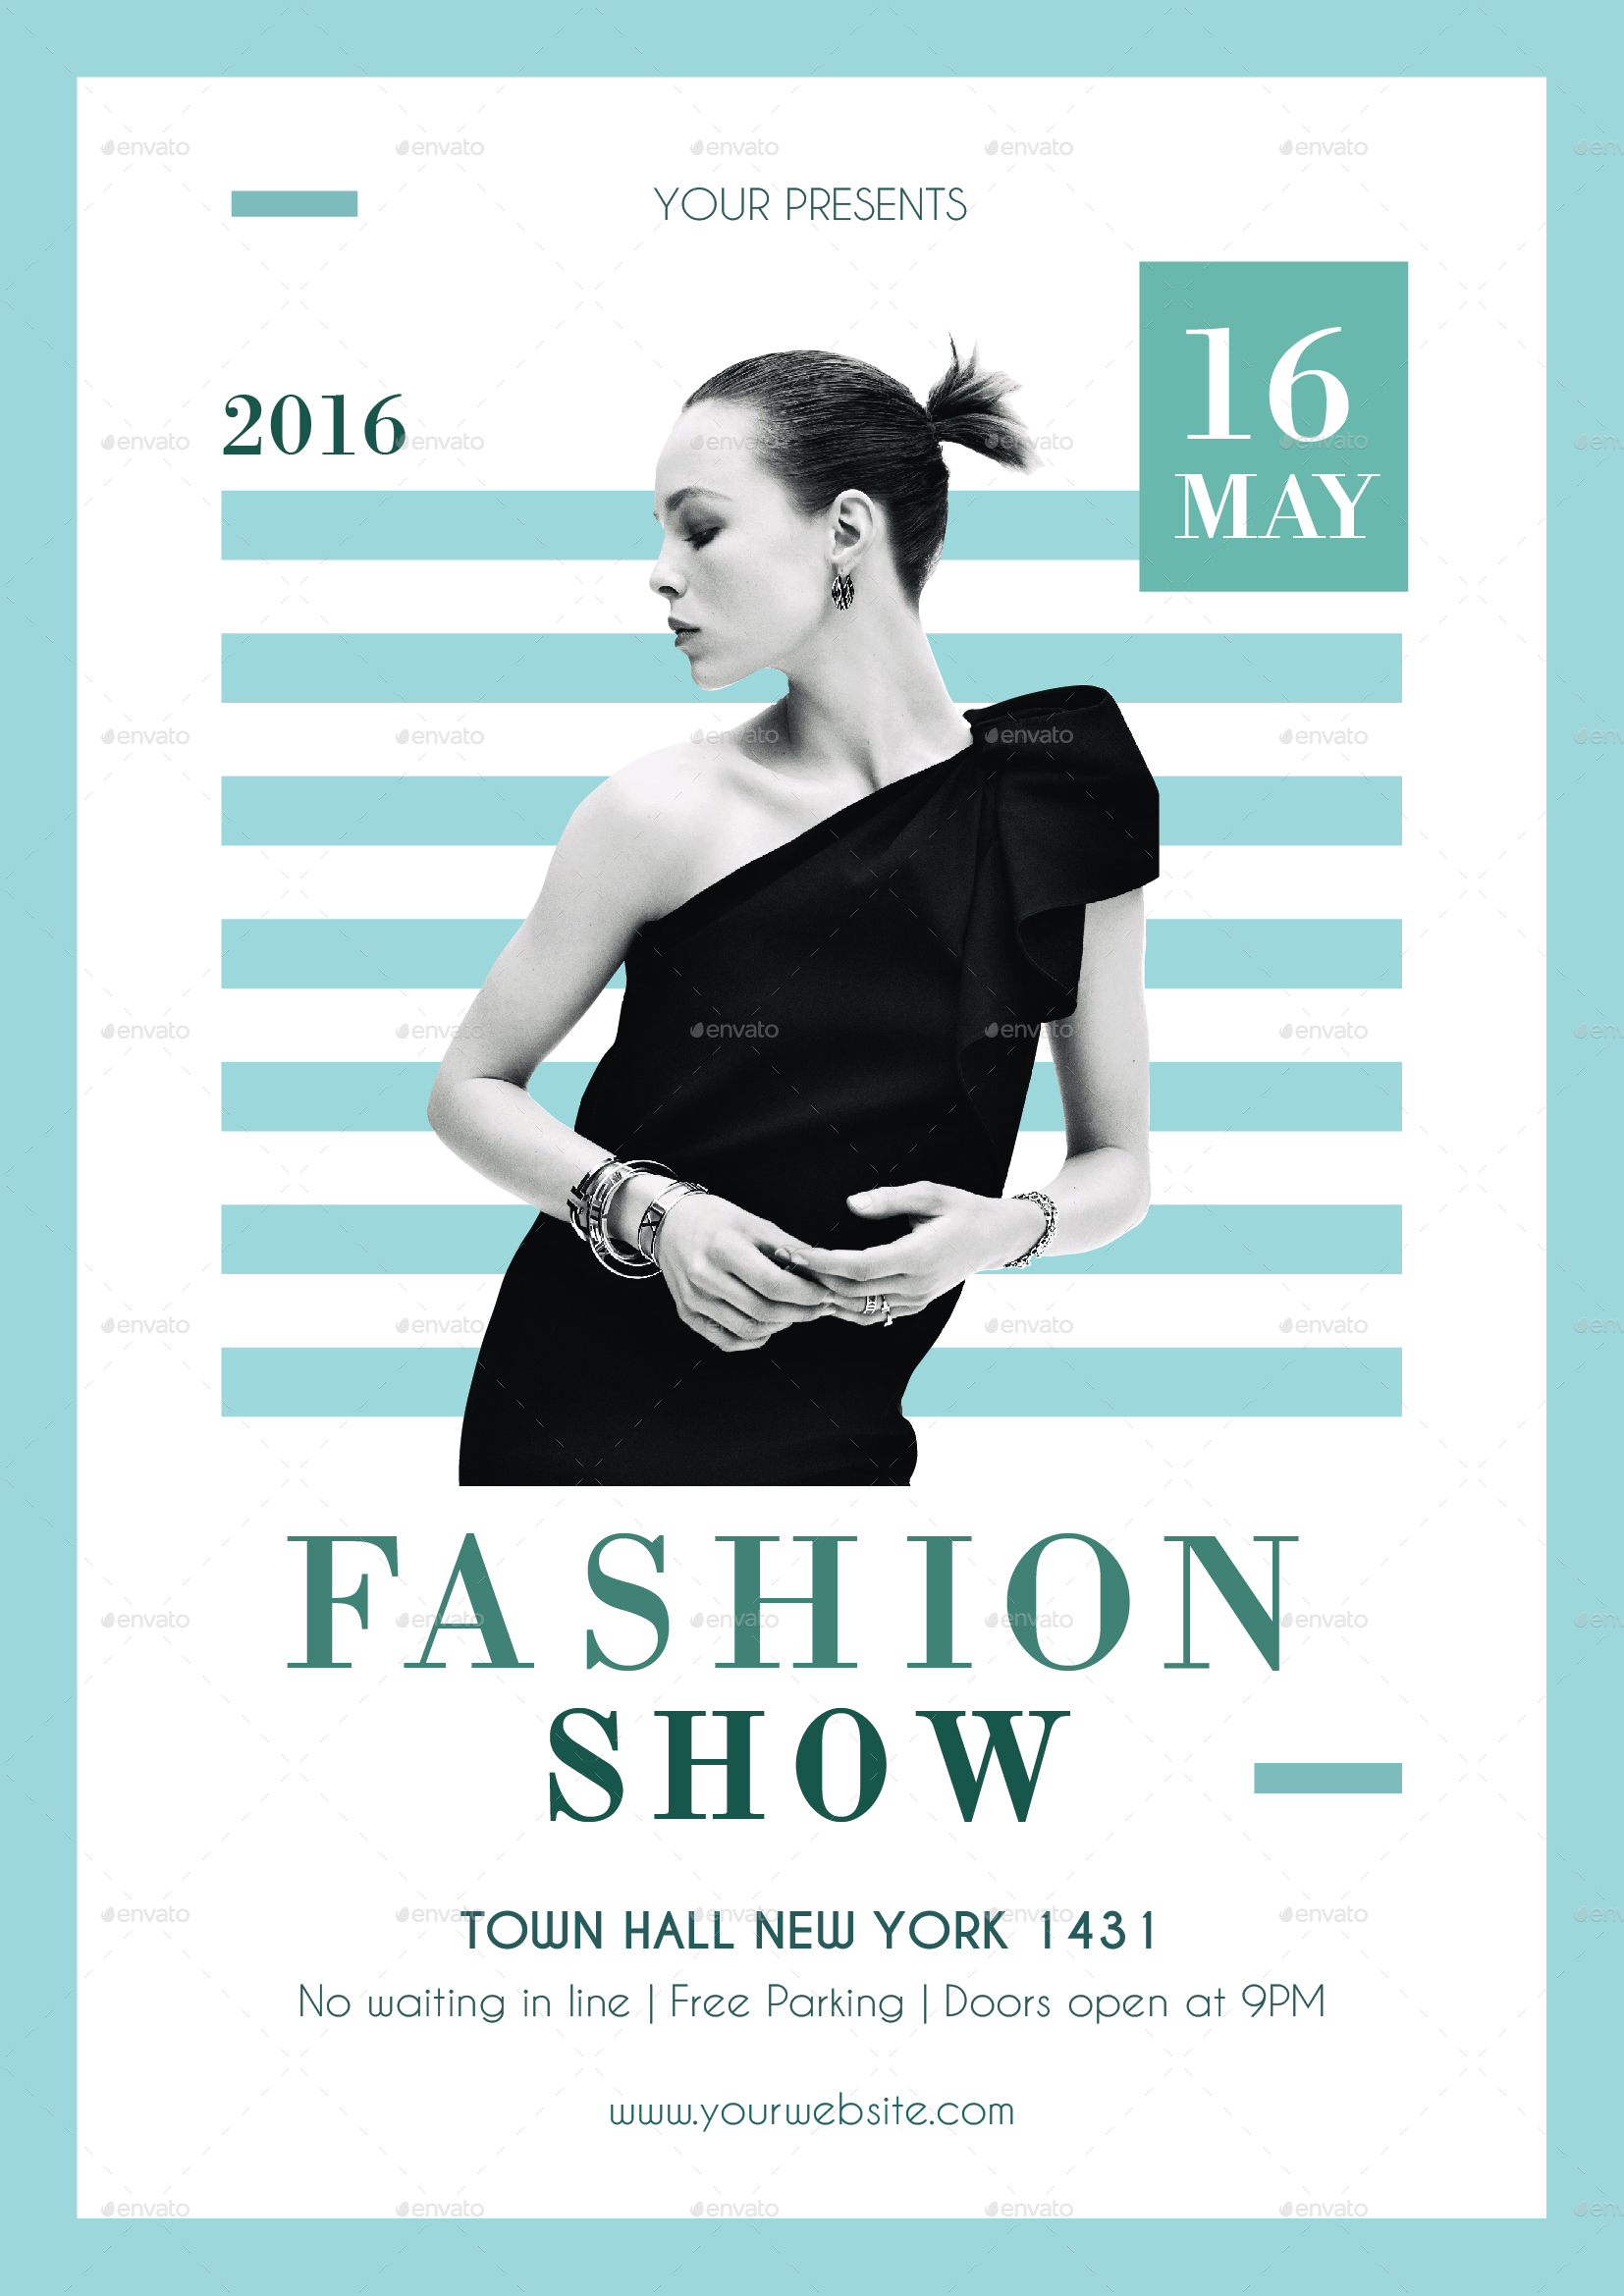 Fashion Show Flyer by infinite78910 | GraphicRiver